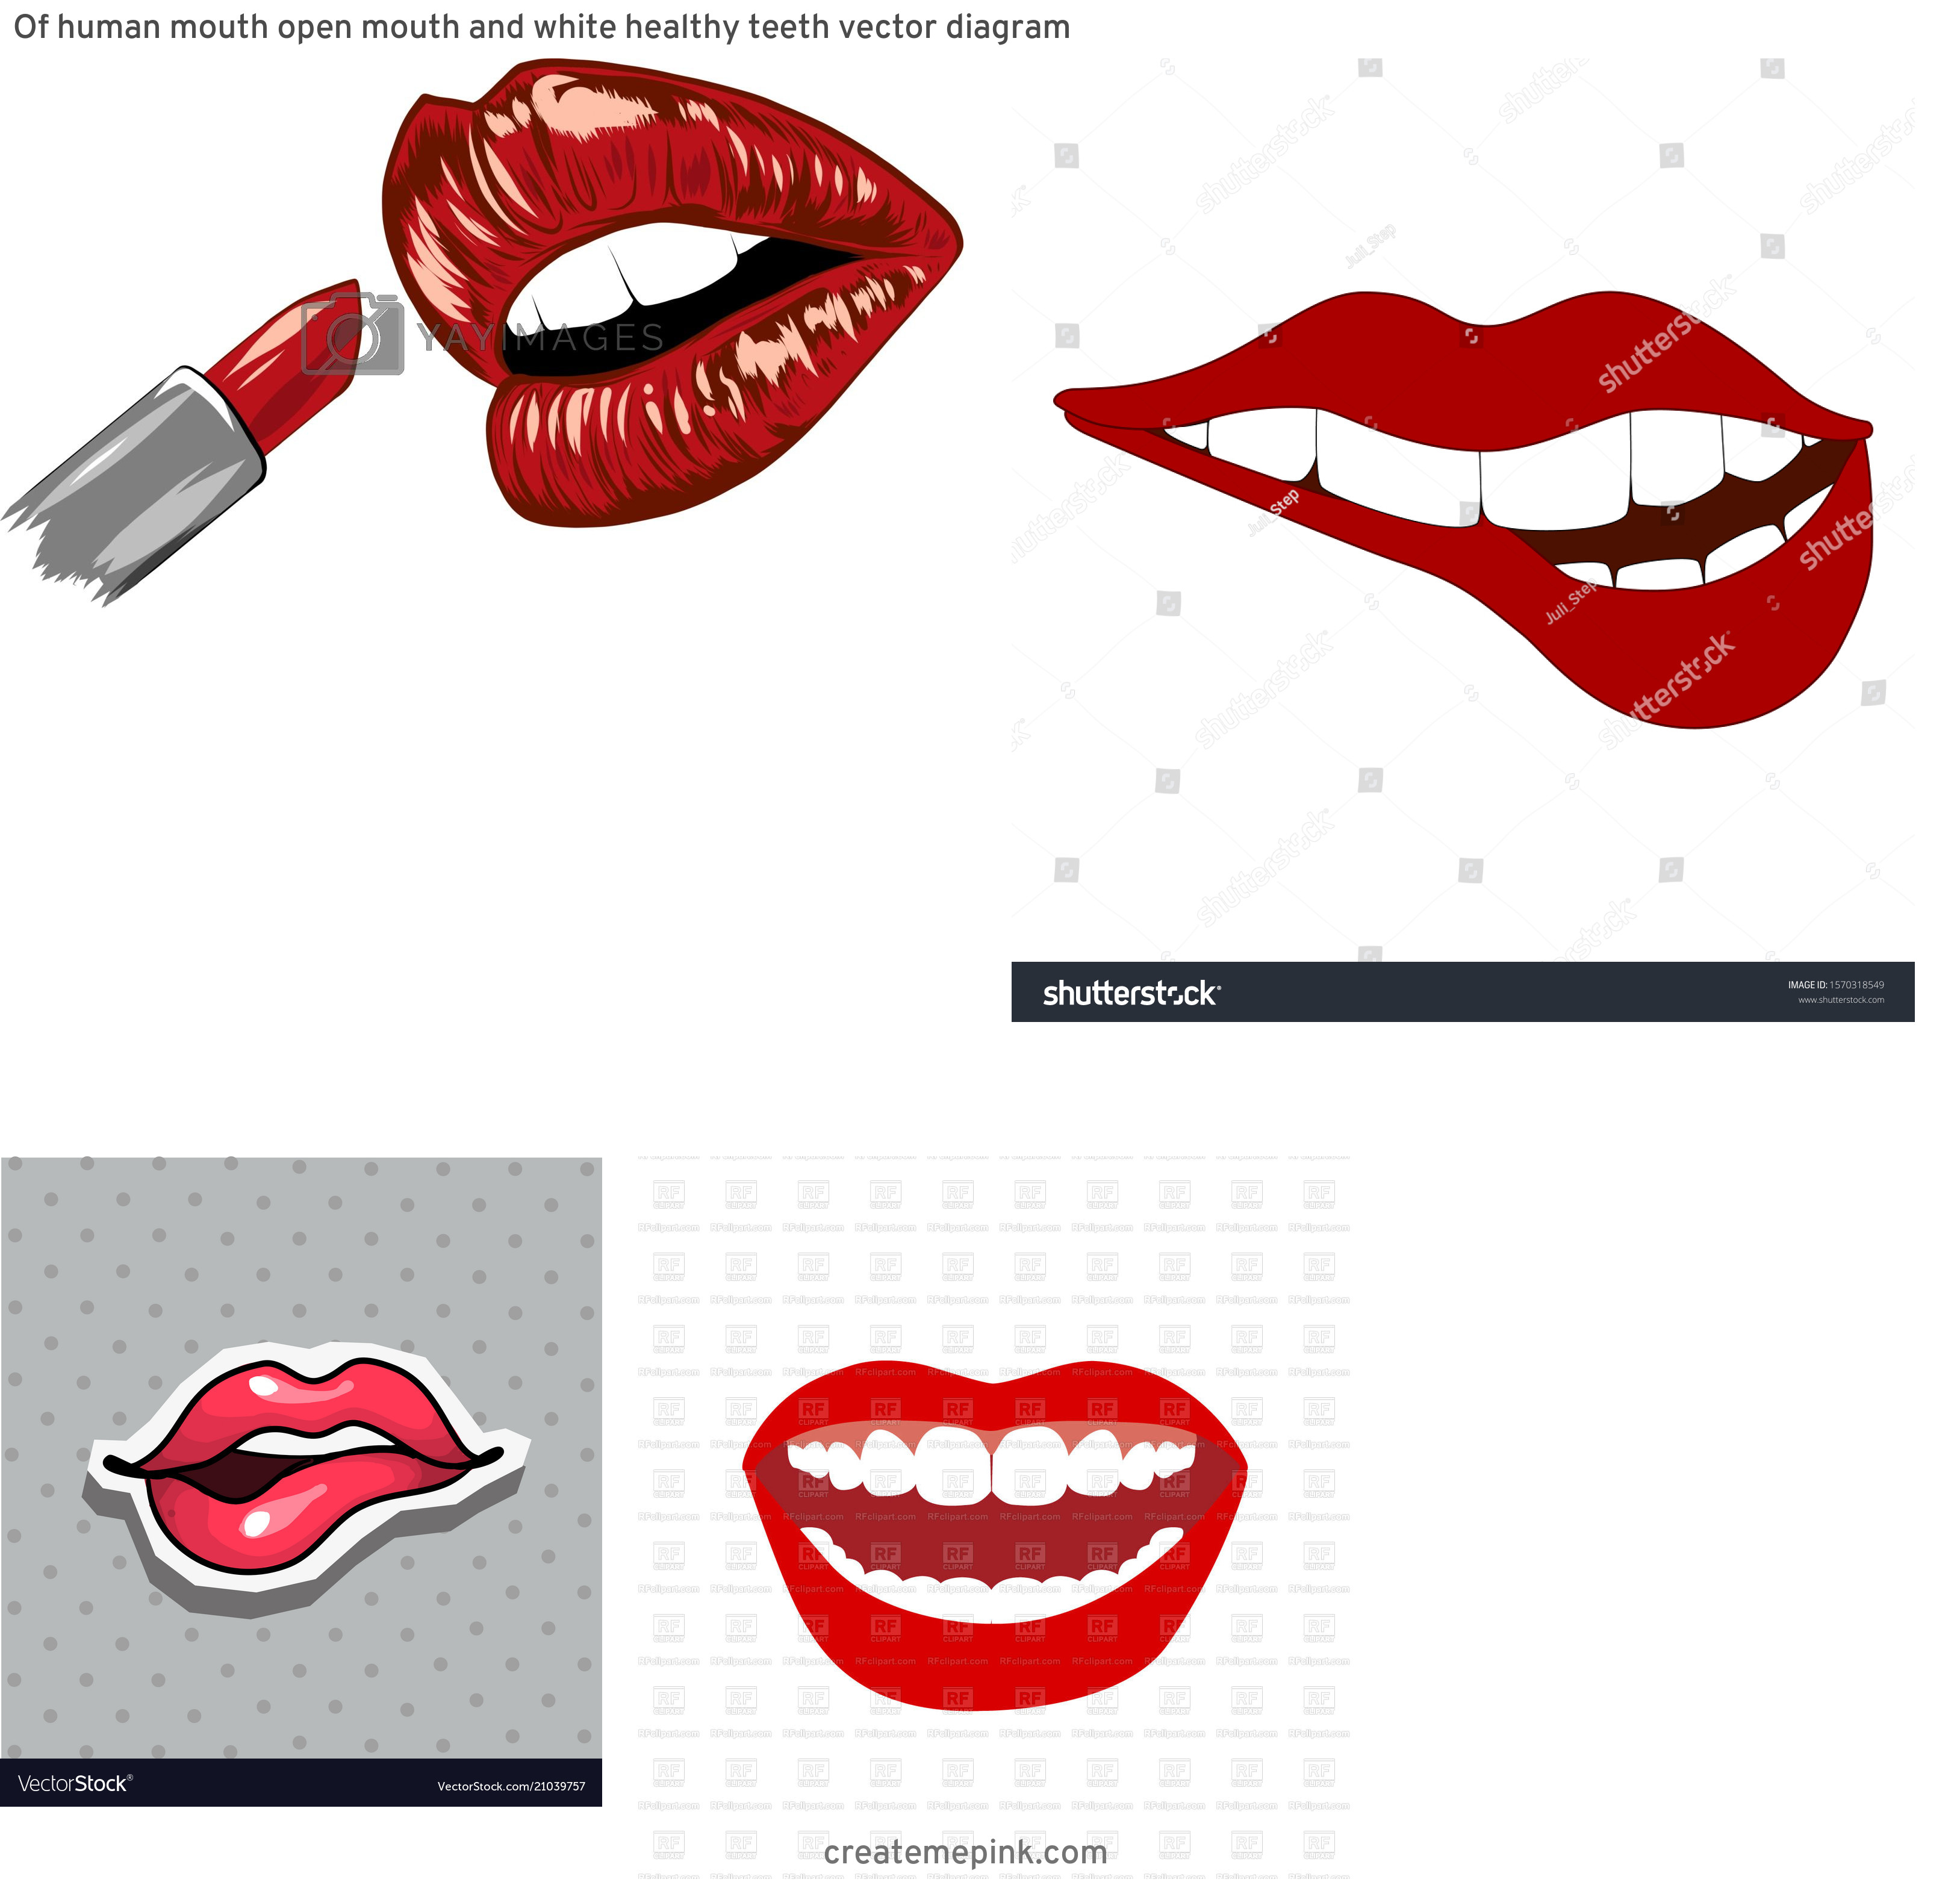 Biting Lip Vector: Of Human Mouth Open Mouth And White Healthy Teeth Vector Diagram